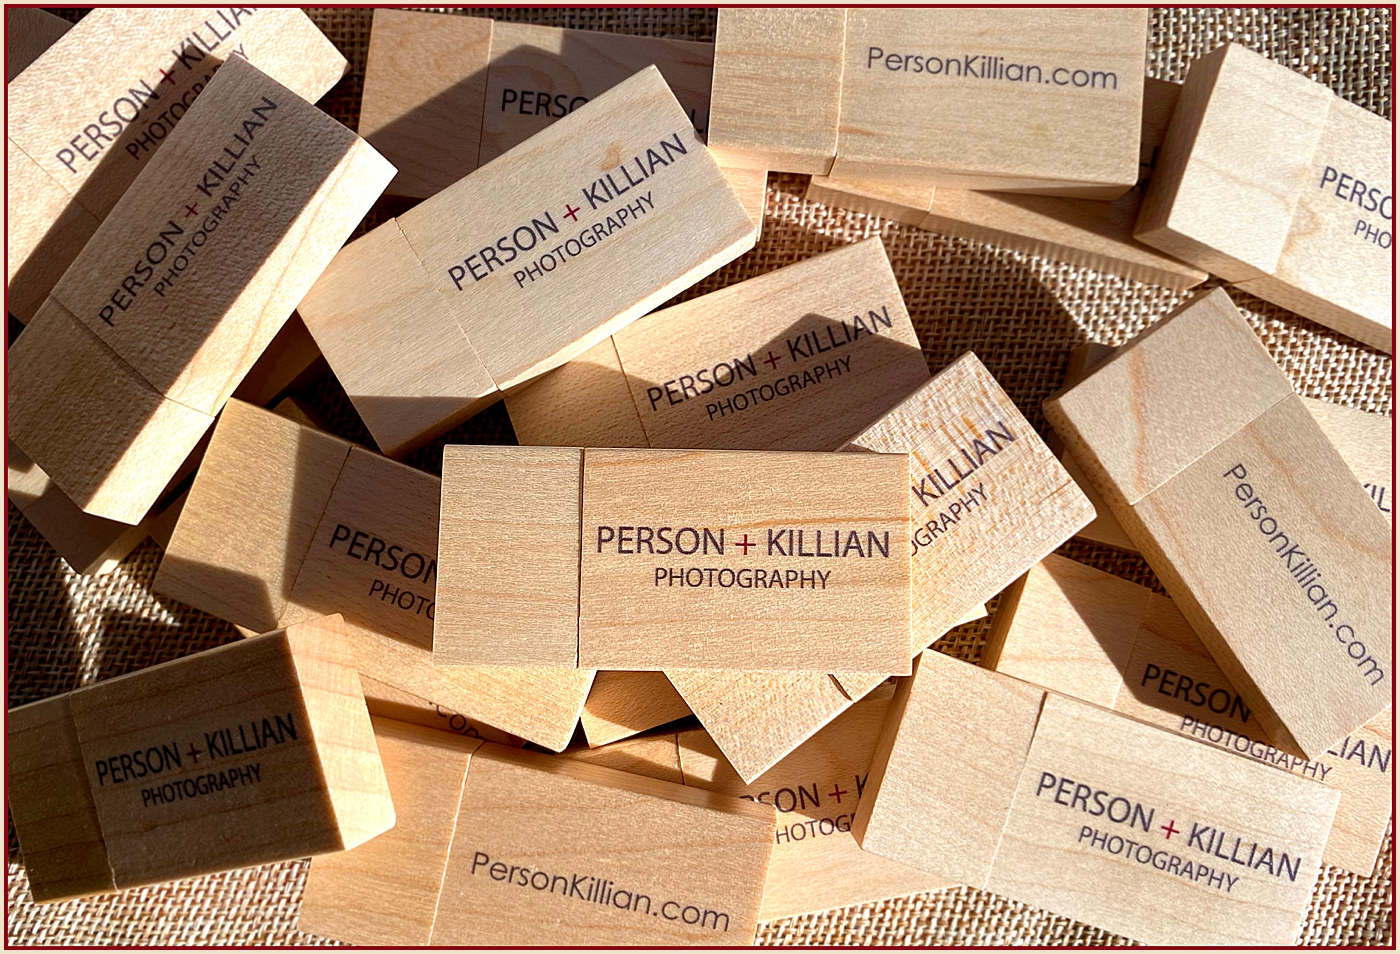 Boston Weddings and Events - Person + Killian Photography Wedding Season Custom Wooden USB Flash Drives